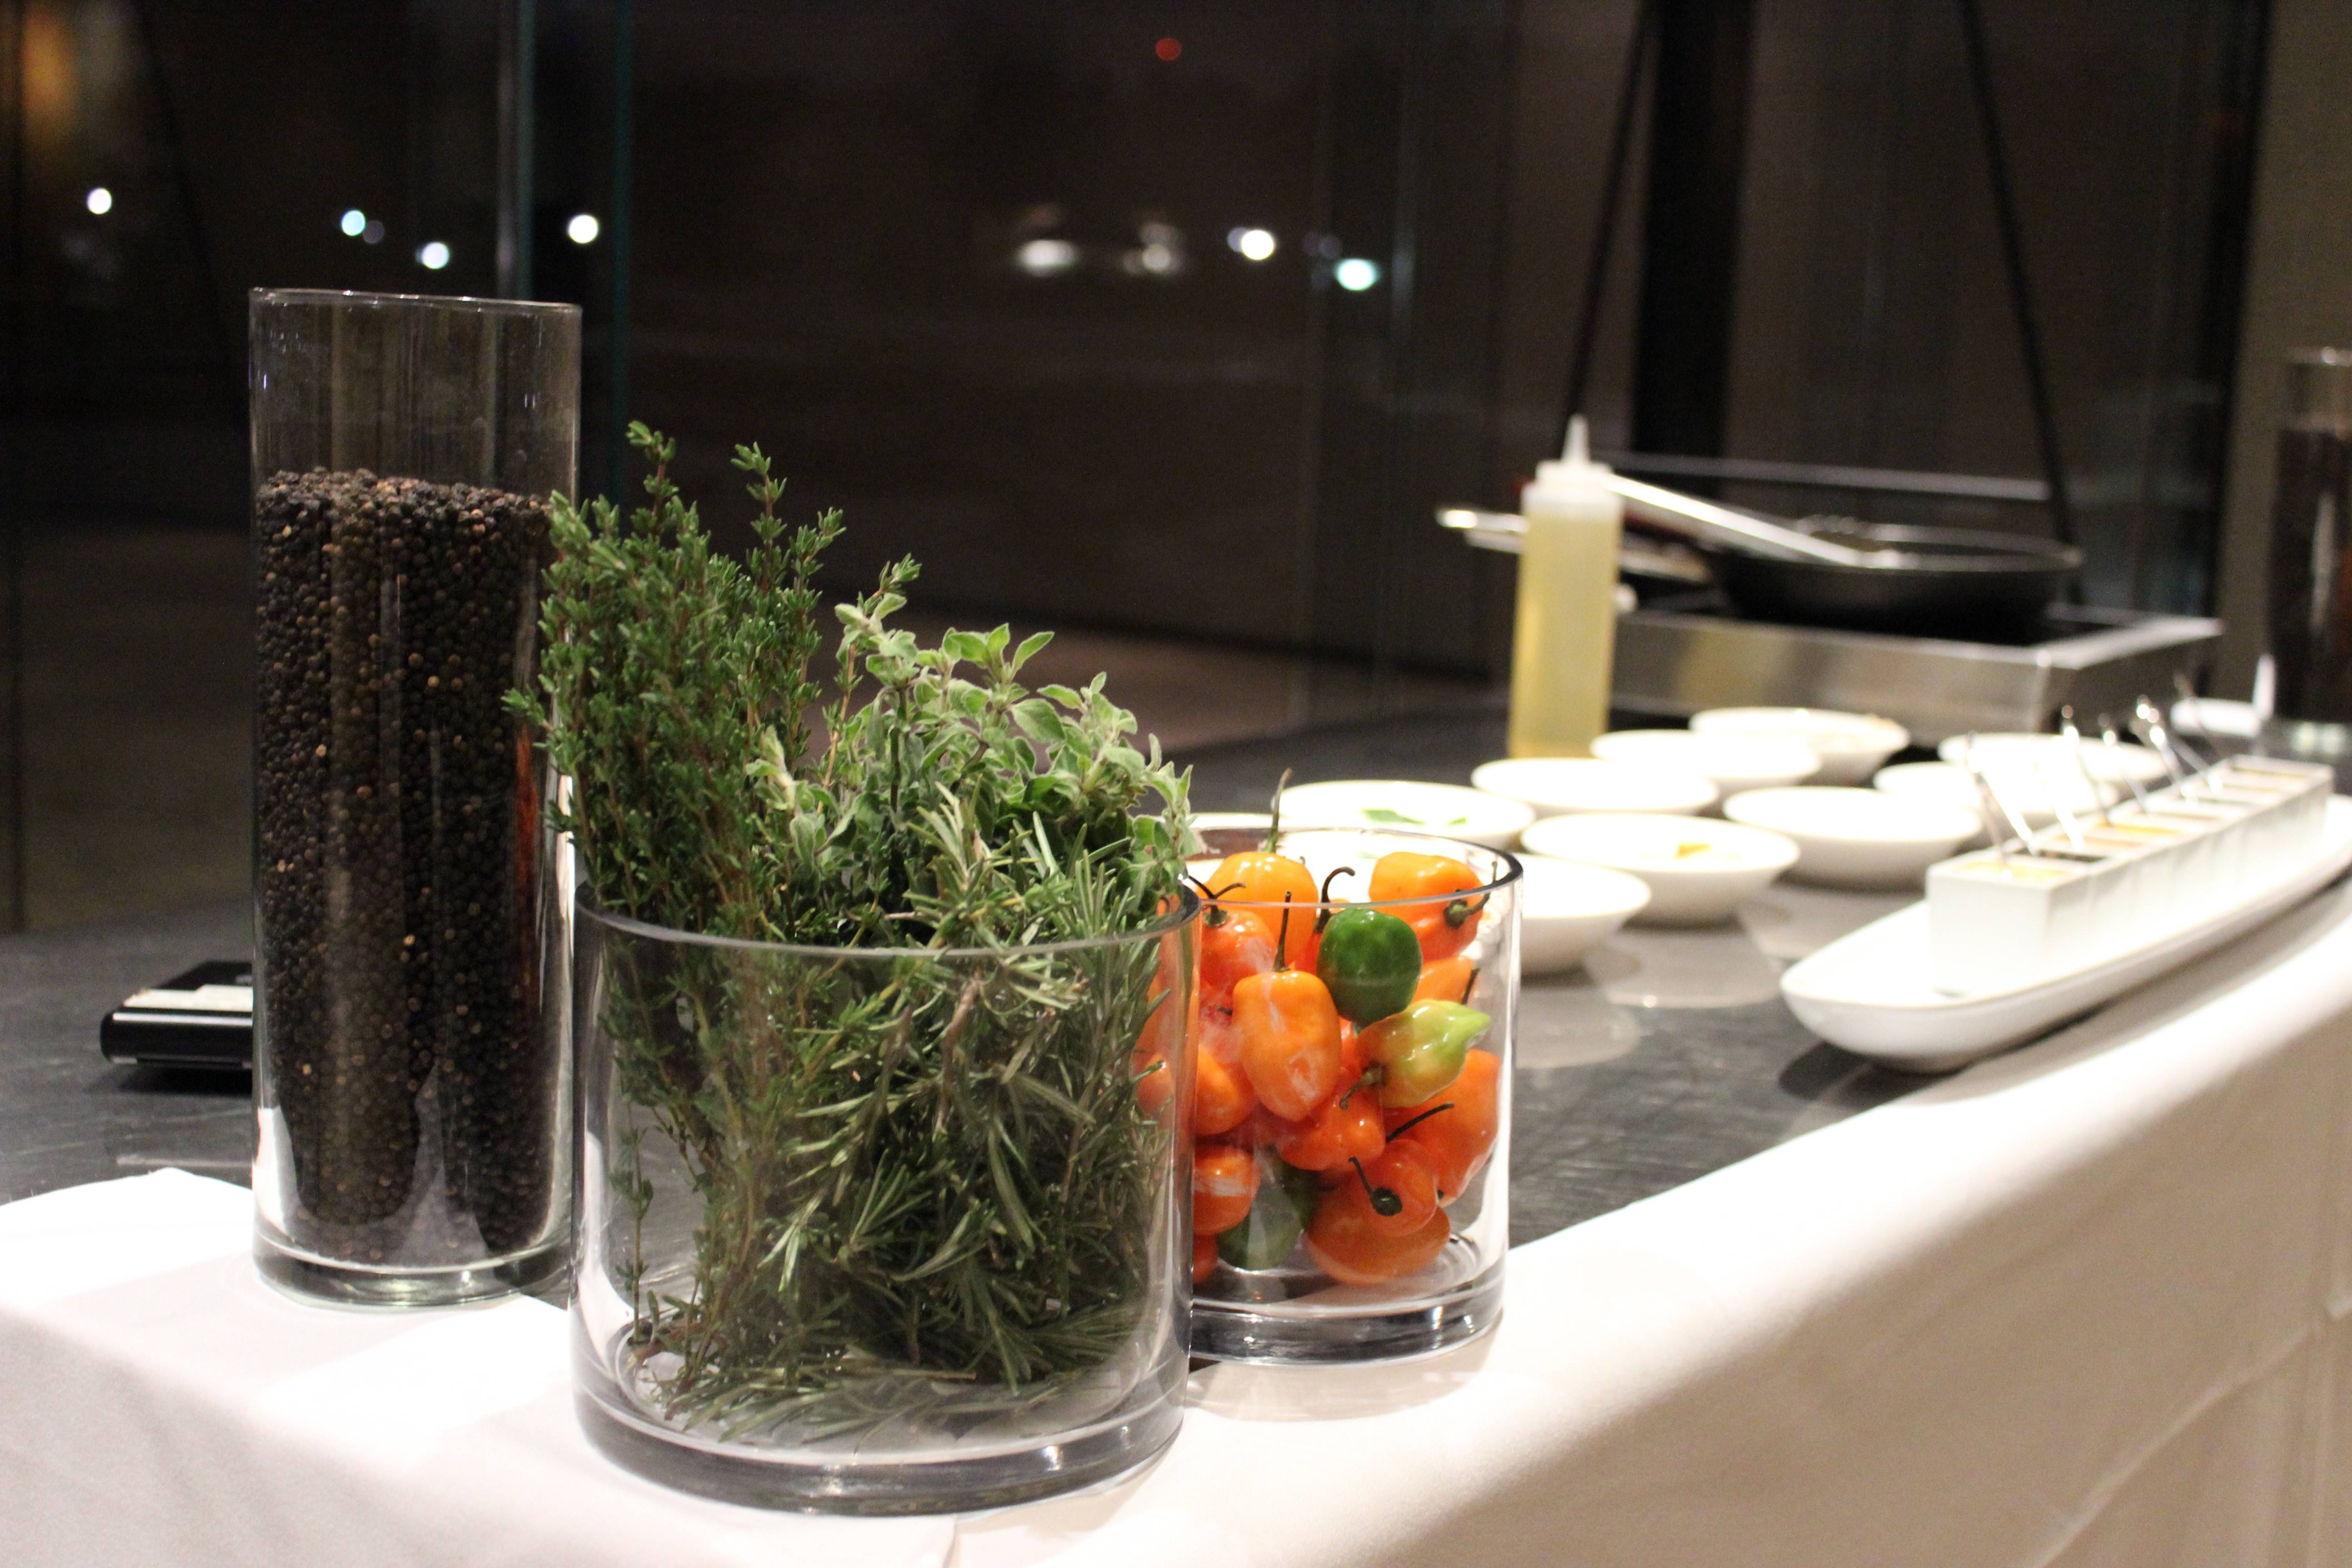 The Morton Arboretum in Lisle has a new Chef's Table series, featuring themed classes.